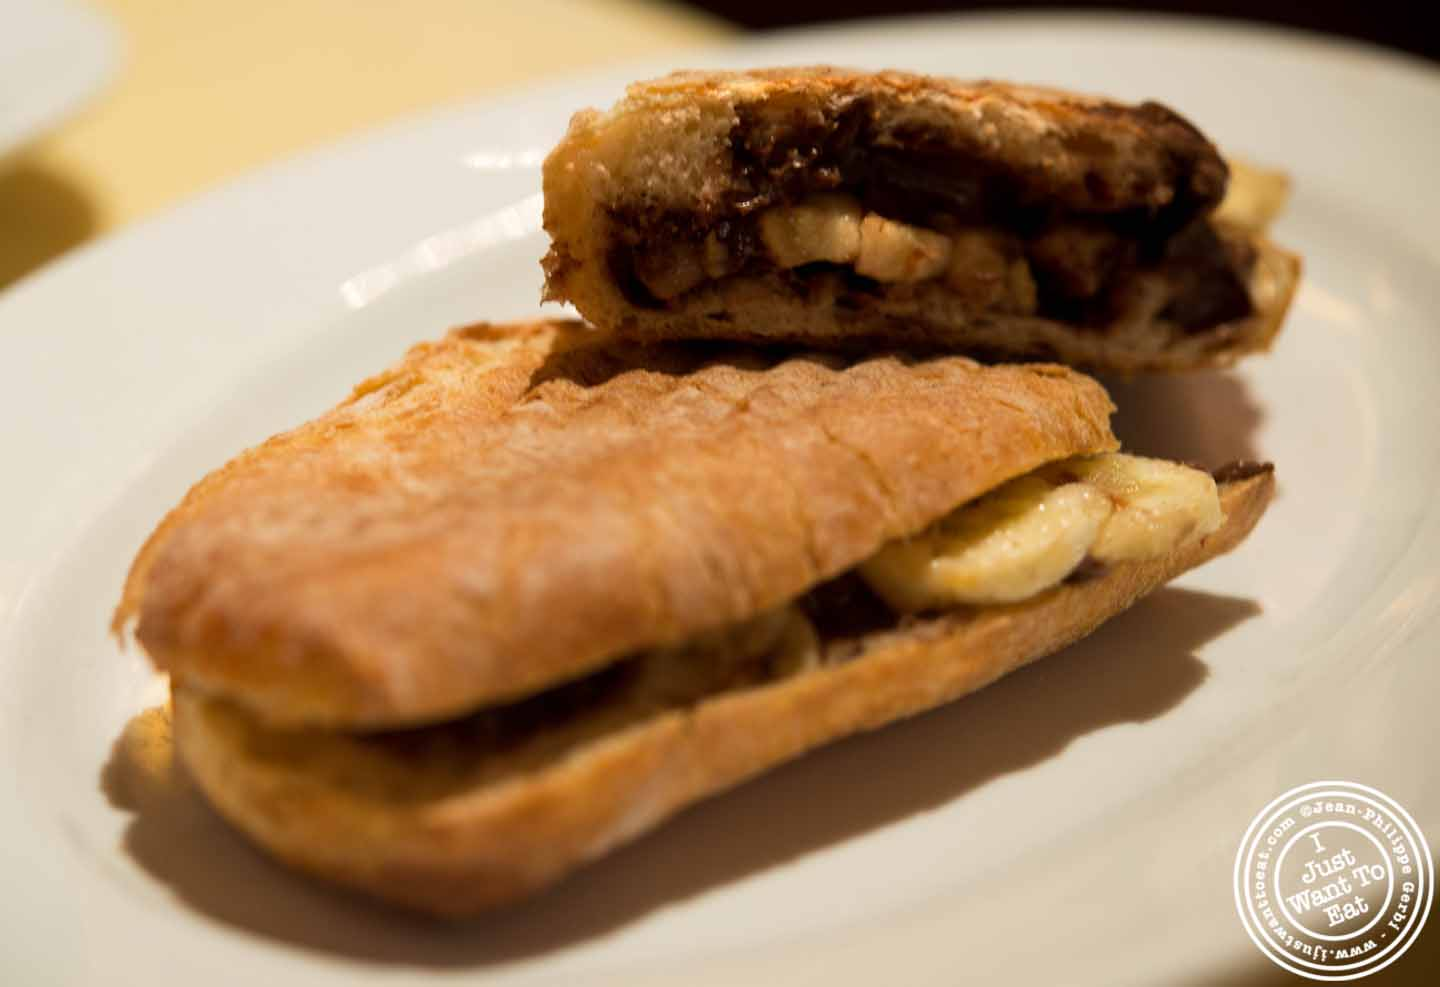 Anyway, I could not not order their nutella and banana sandwich!!!